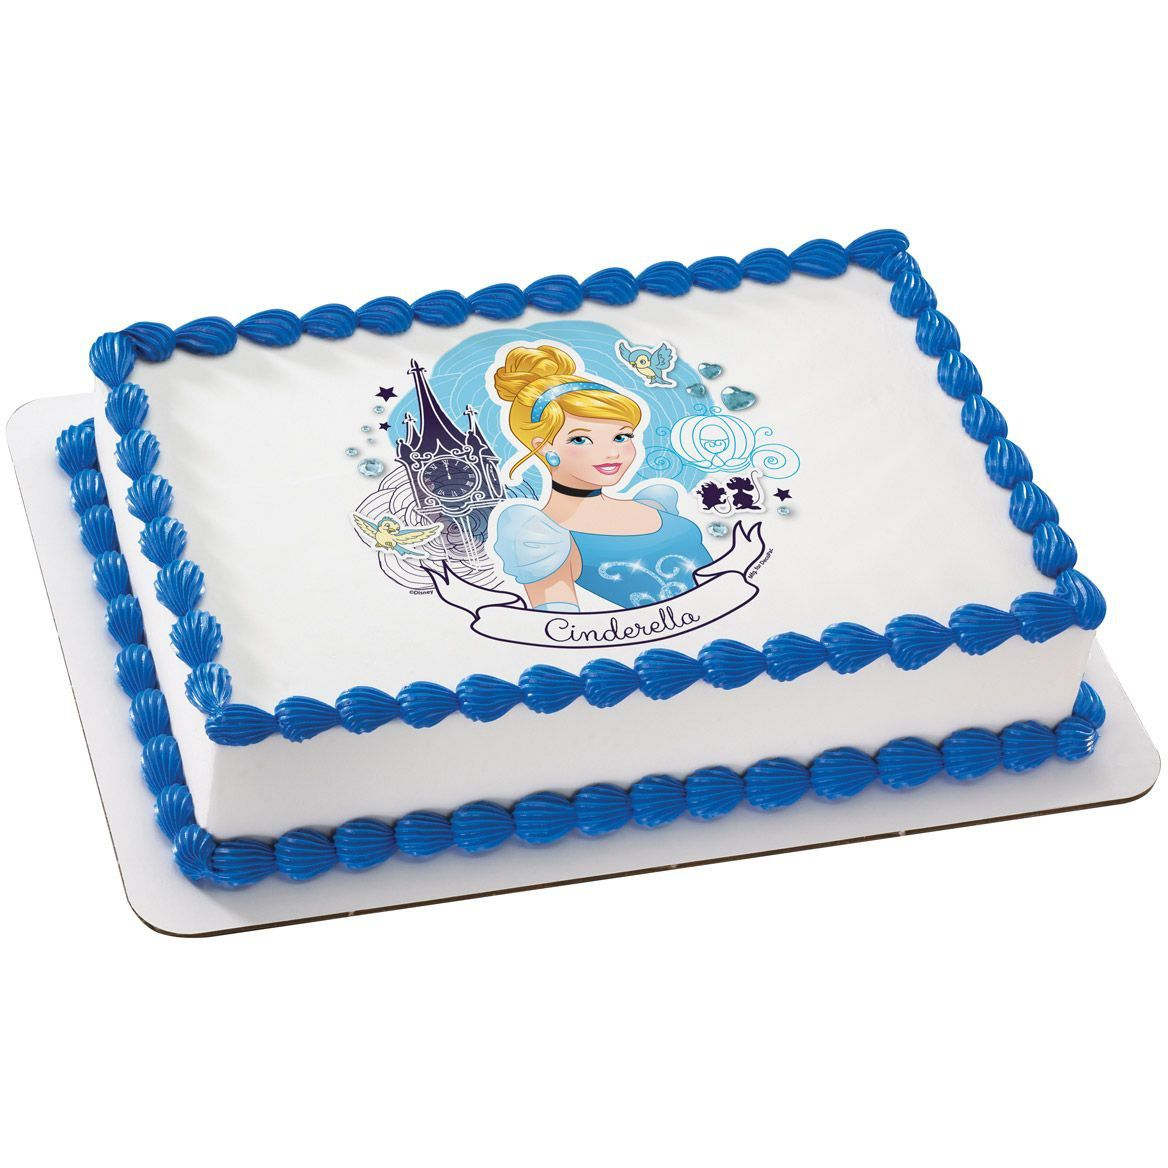 picture regarding Printable Edible Cake Toppers named Cinderella Quarter Sheet Edible Cake Topper - Cooking Kits